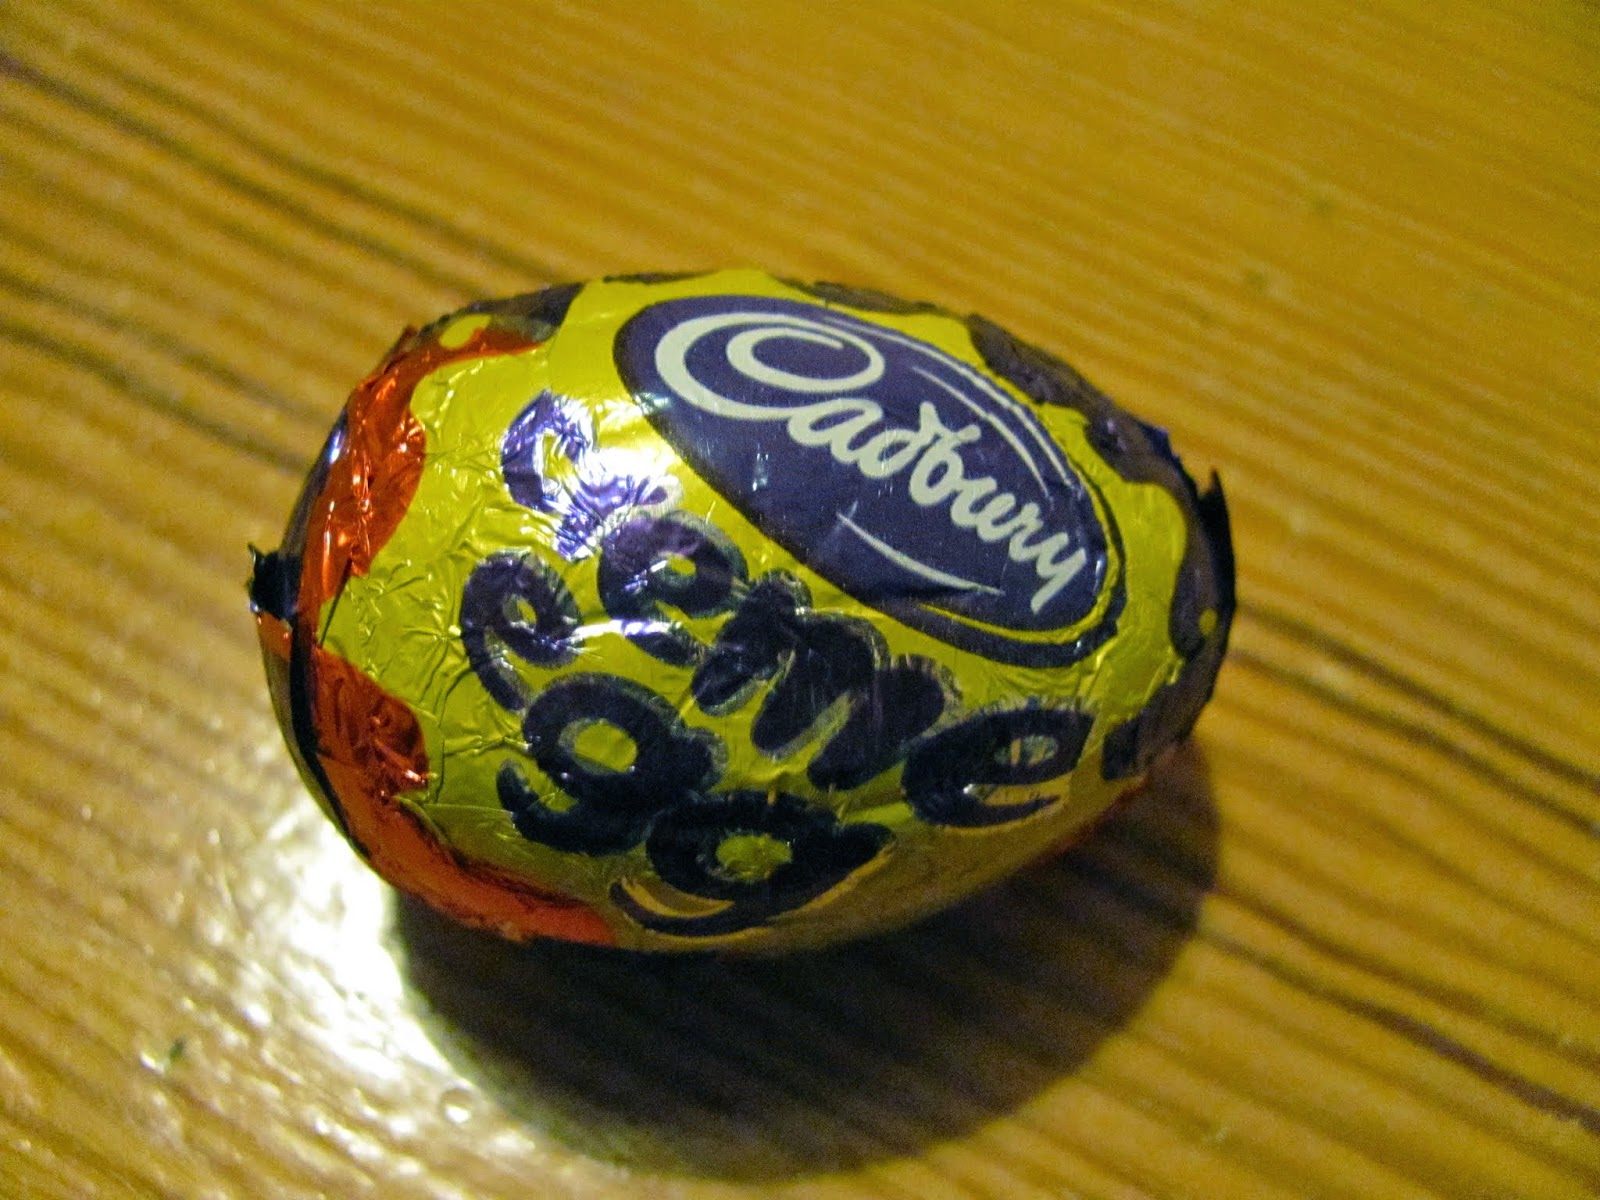 The Only Cadbury Candy Americans Ever See